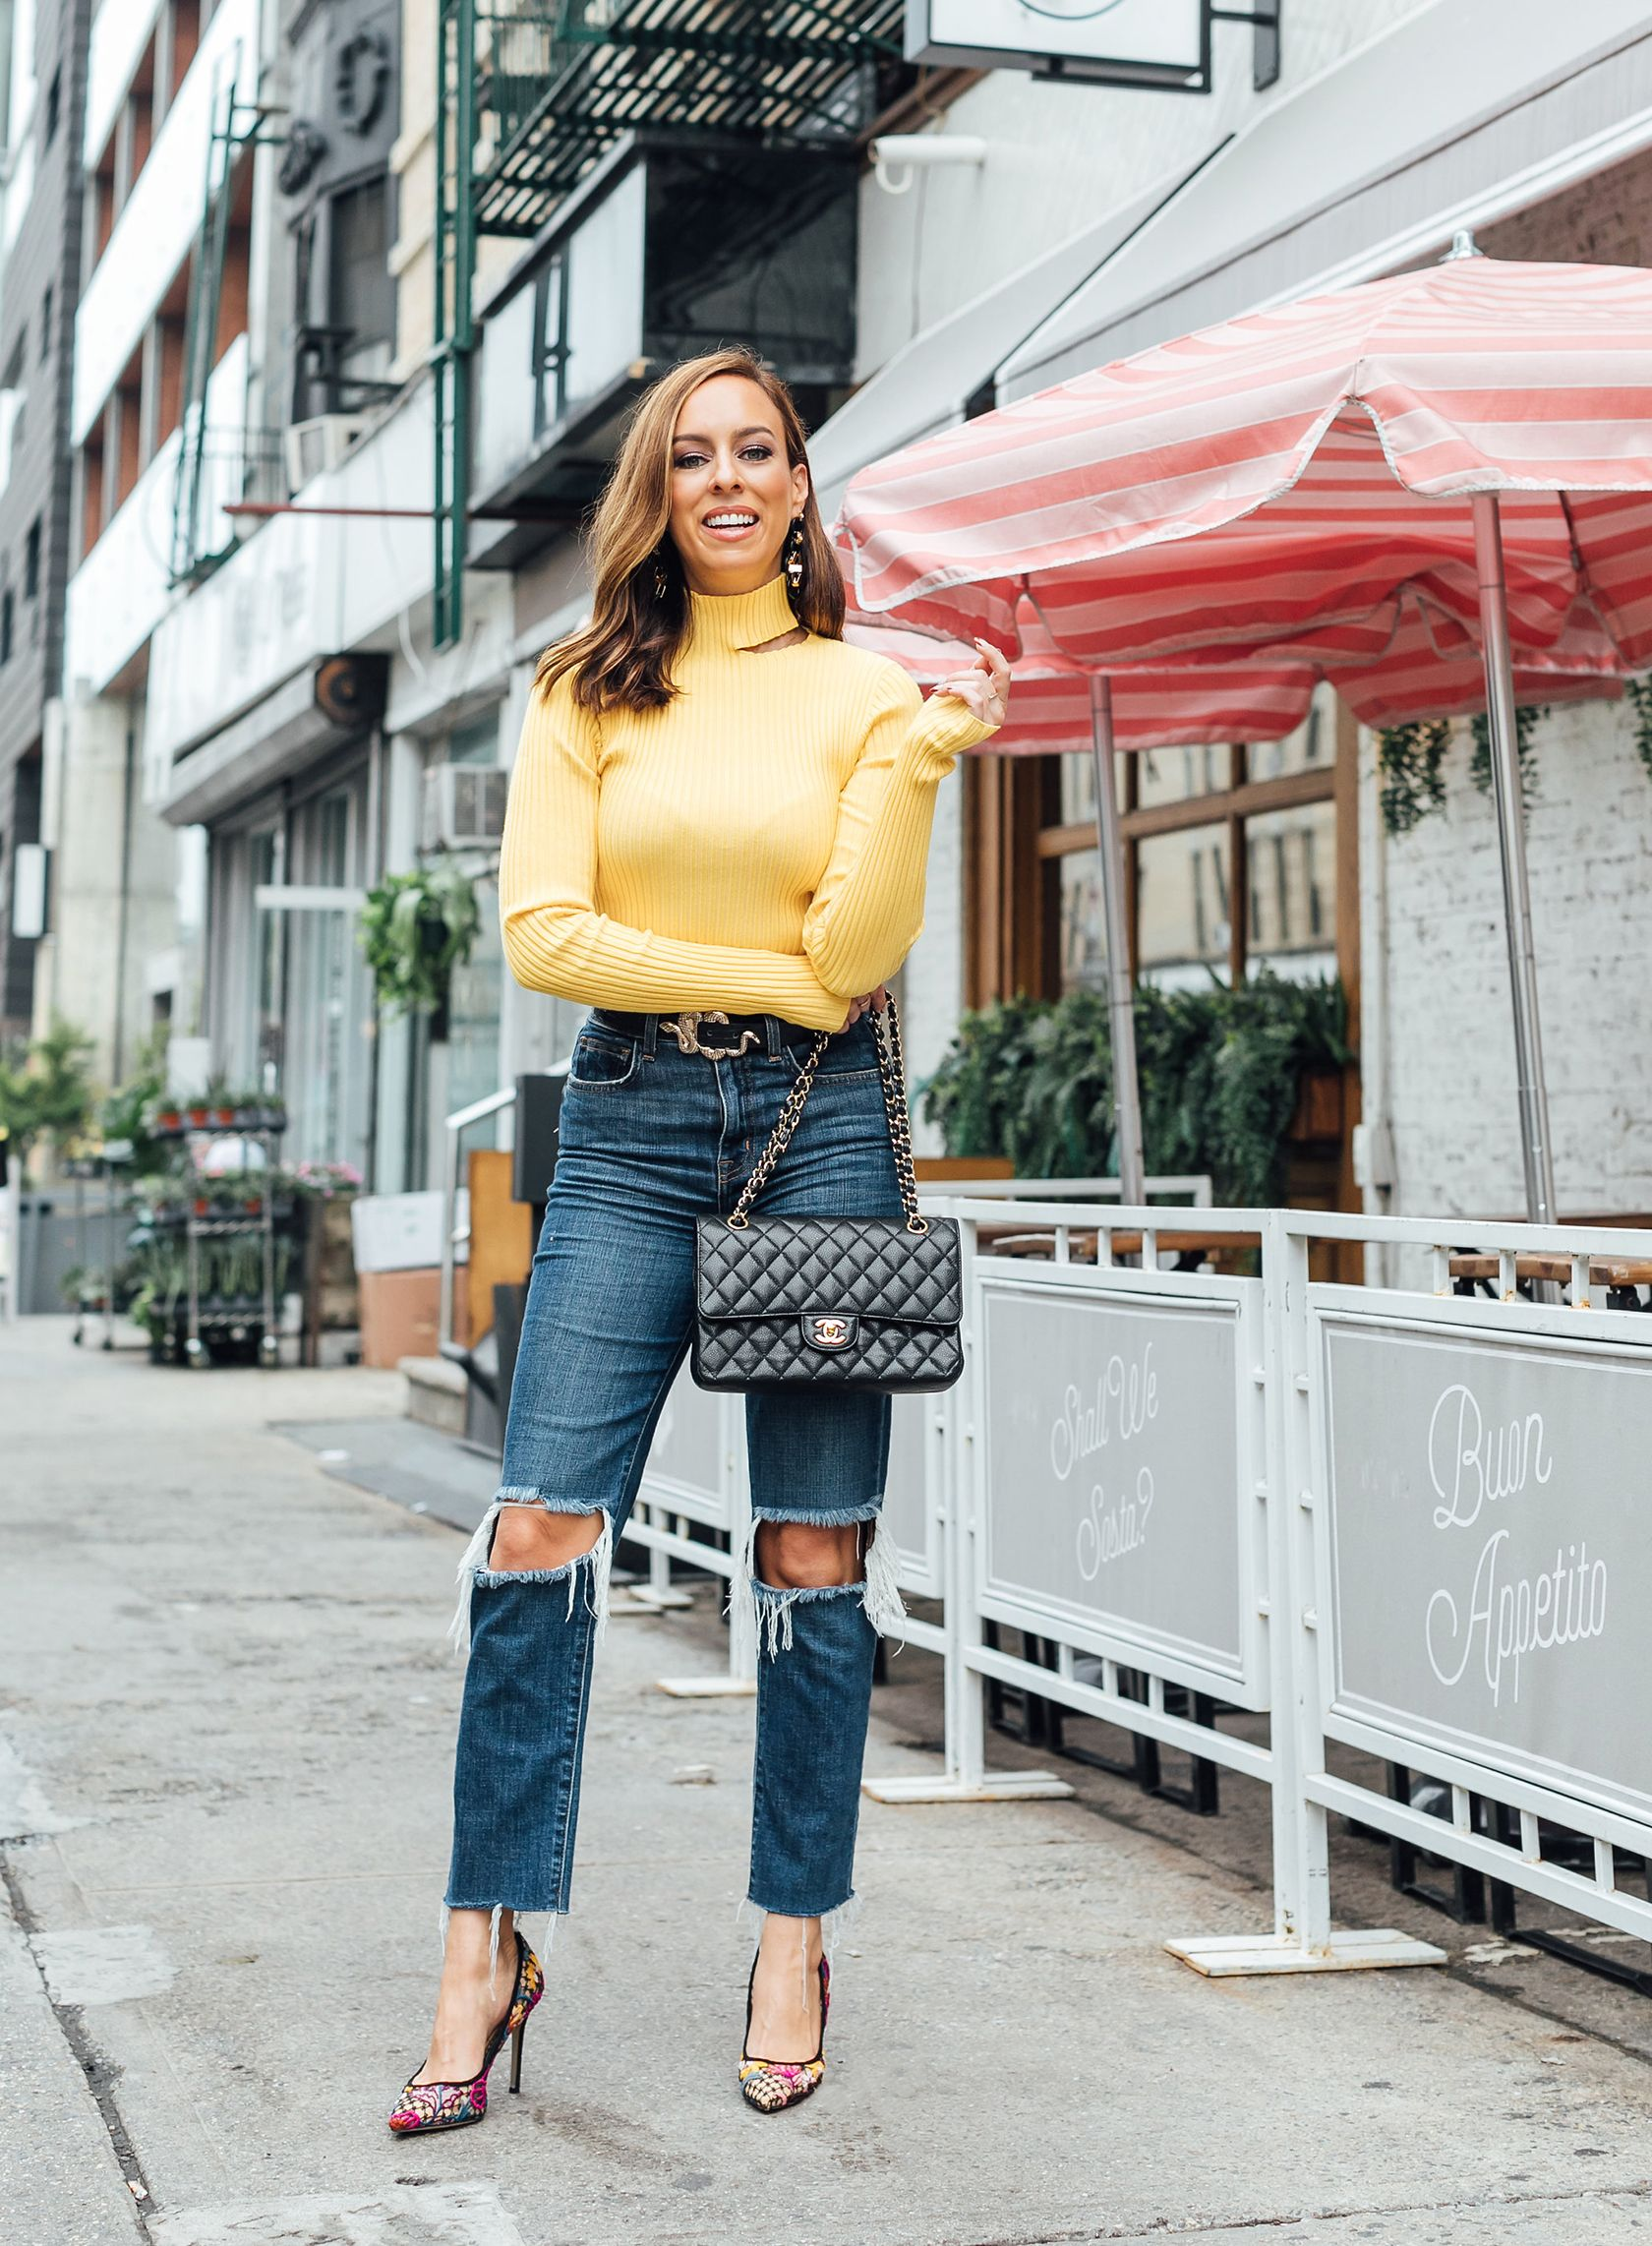 f0a590ab64aa4 Sydne Style shows casual outfit ideas with yellow sweater and ripped denim  #yellow #sweater #cutouts #jeans #chanelbag @sydnesummer